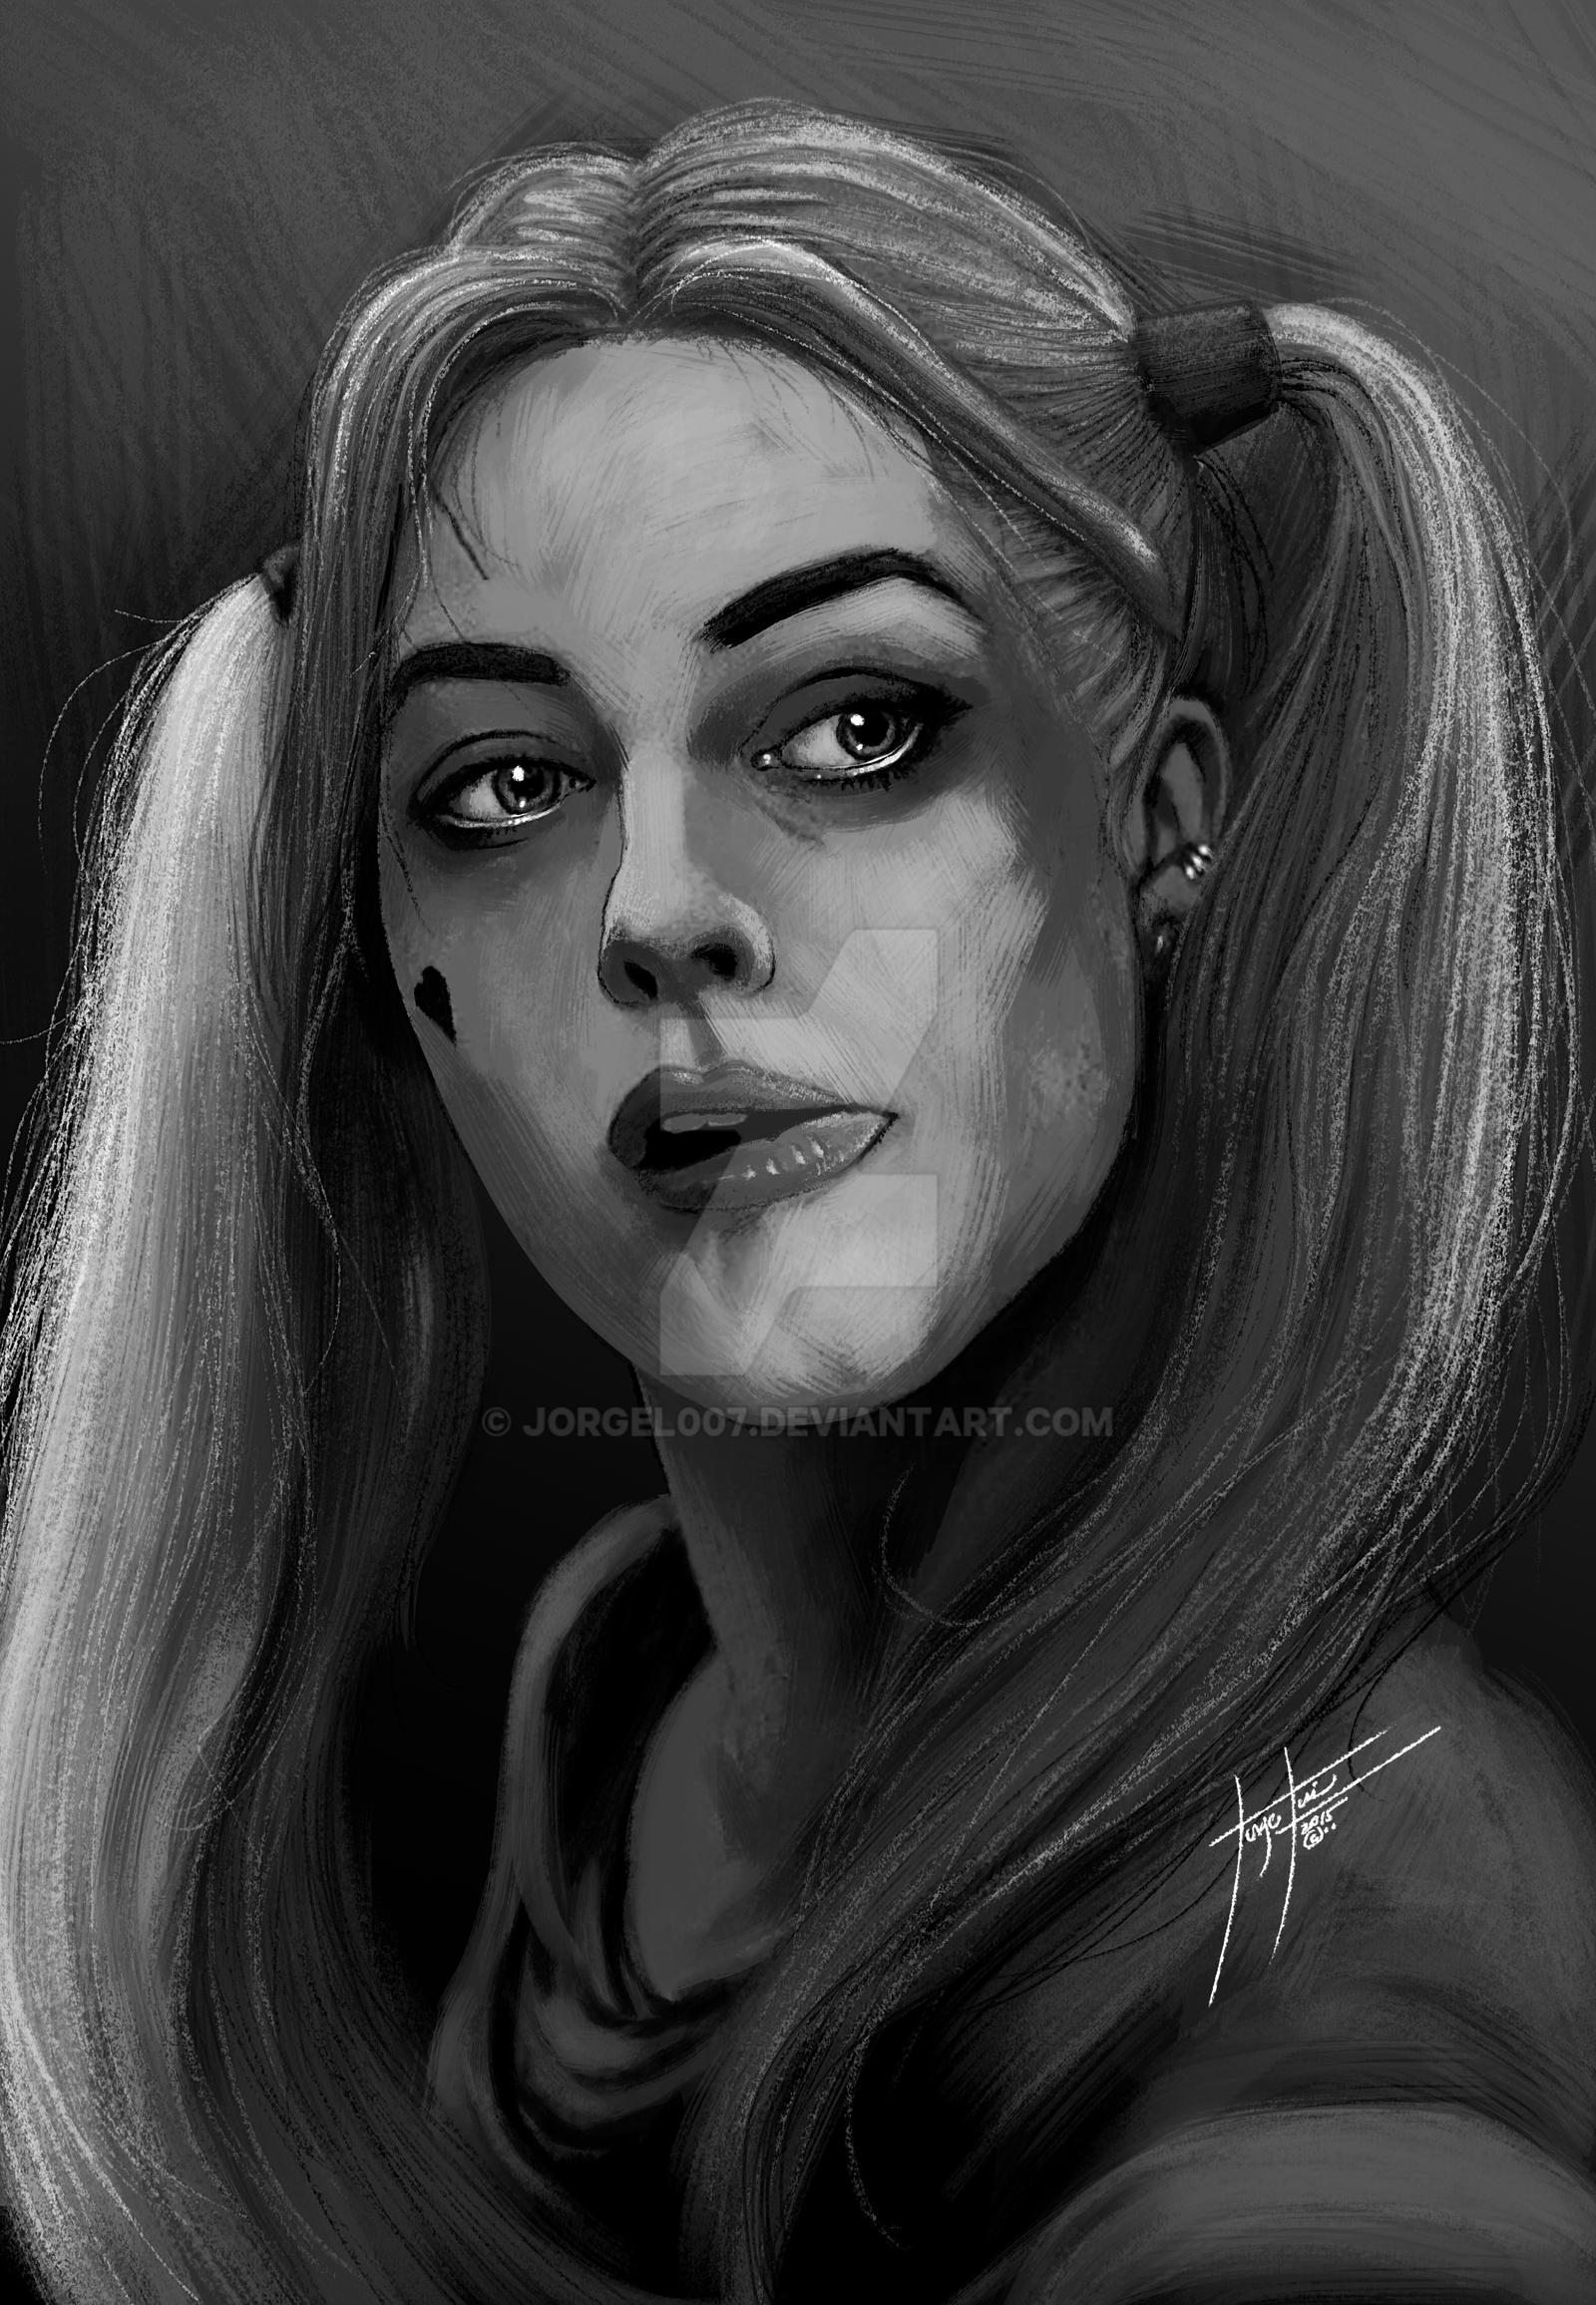 Pin by renan iago on artes harley quinn margot robbie